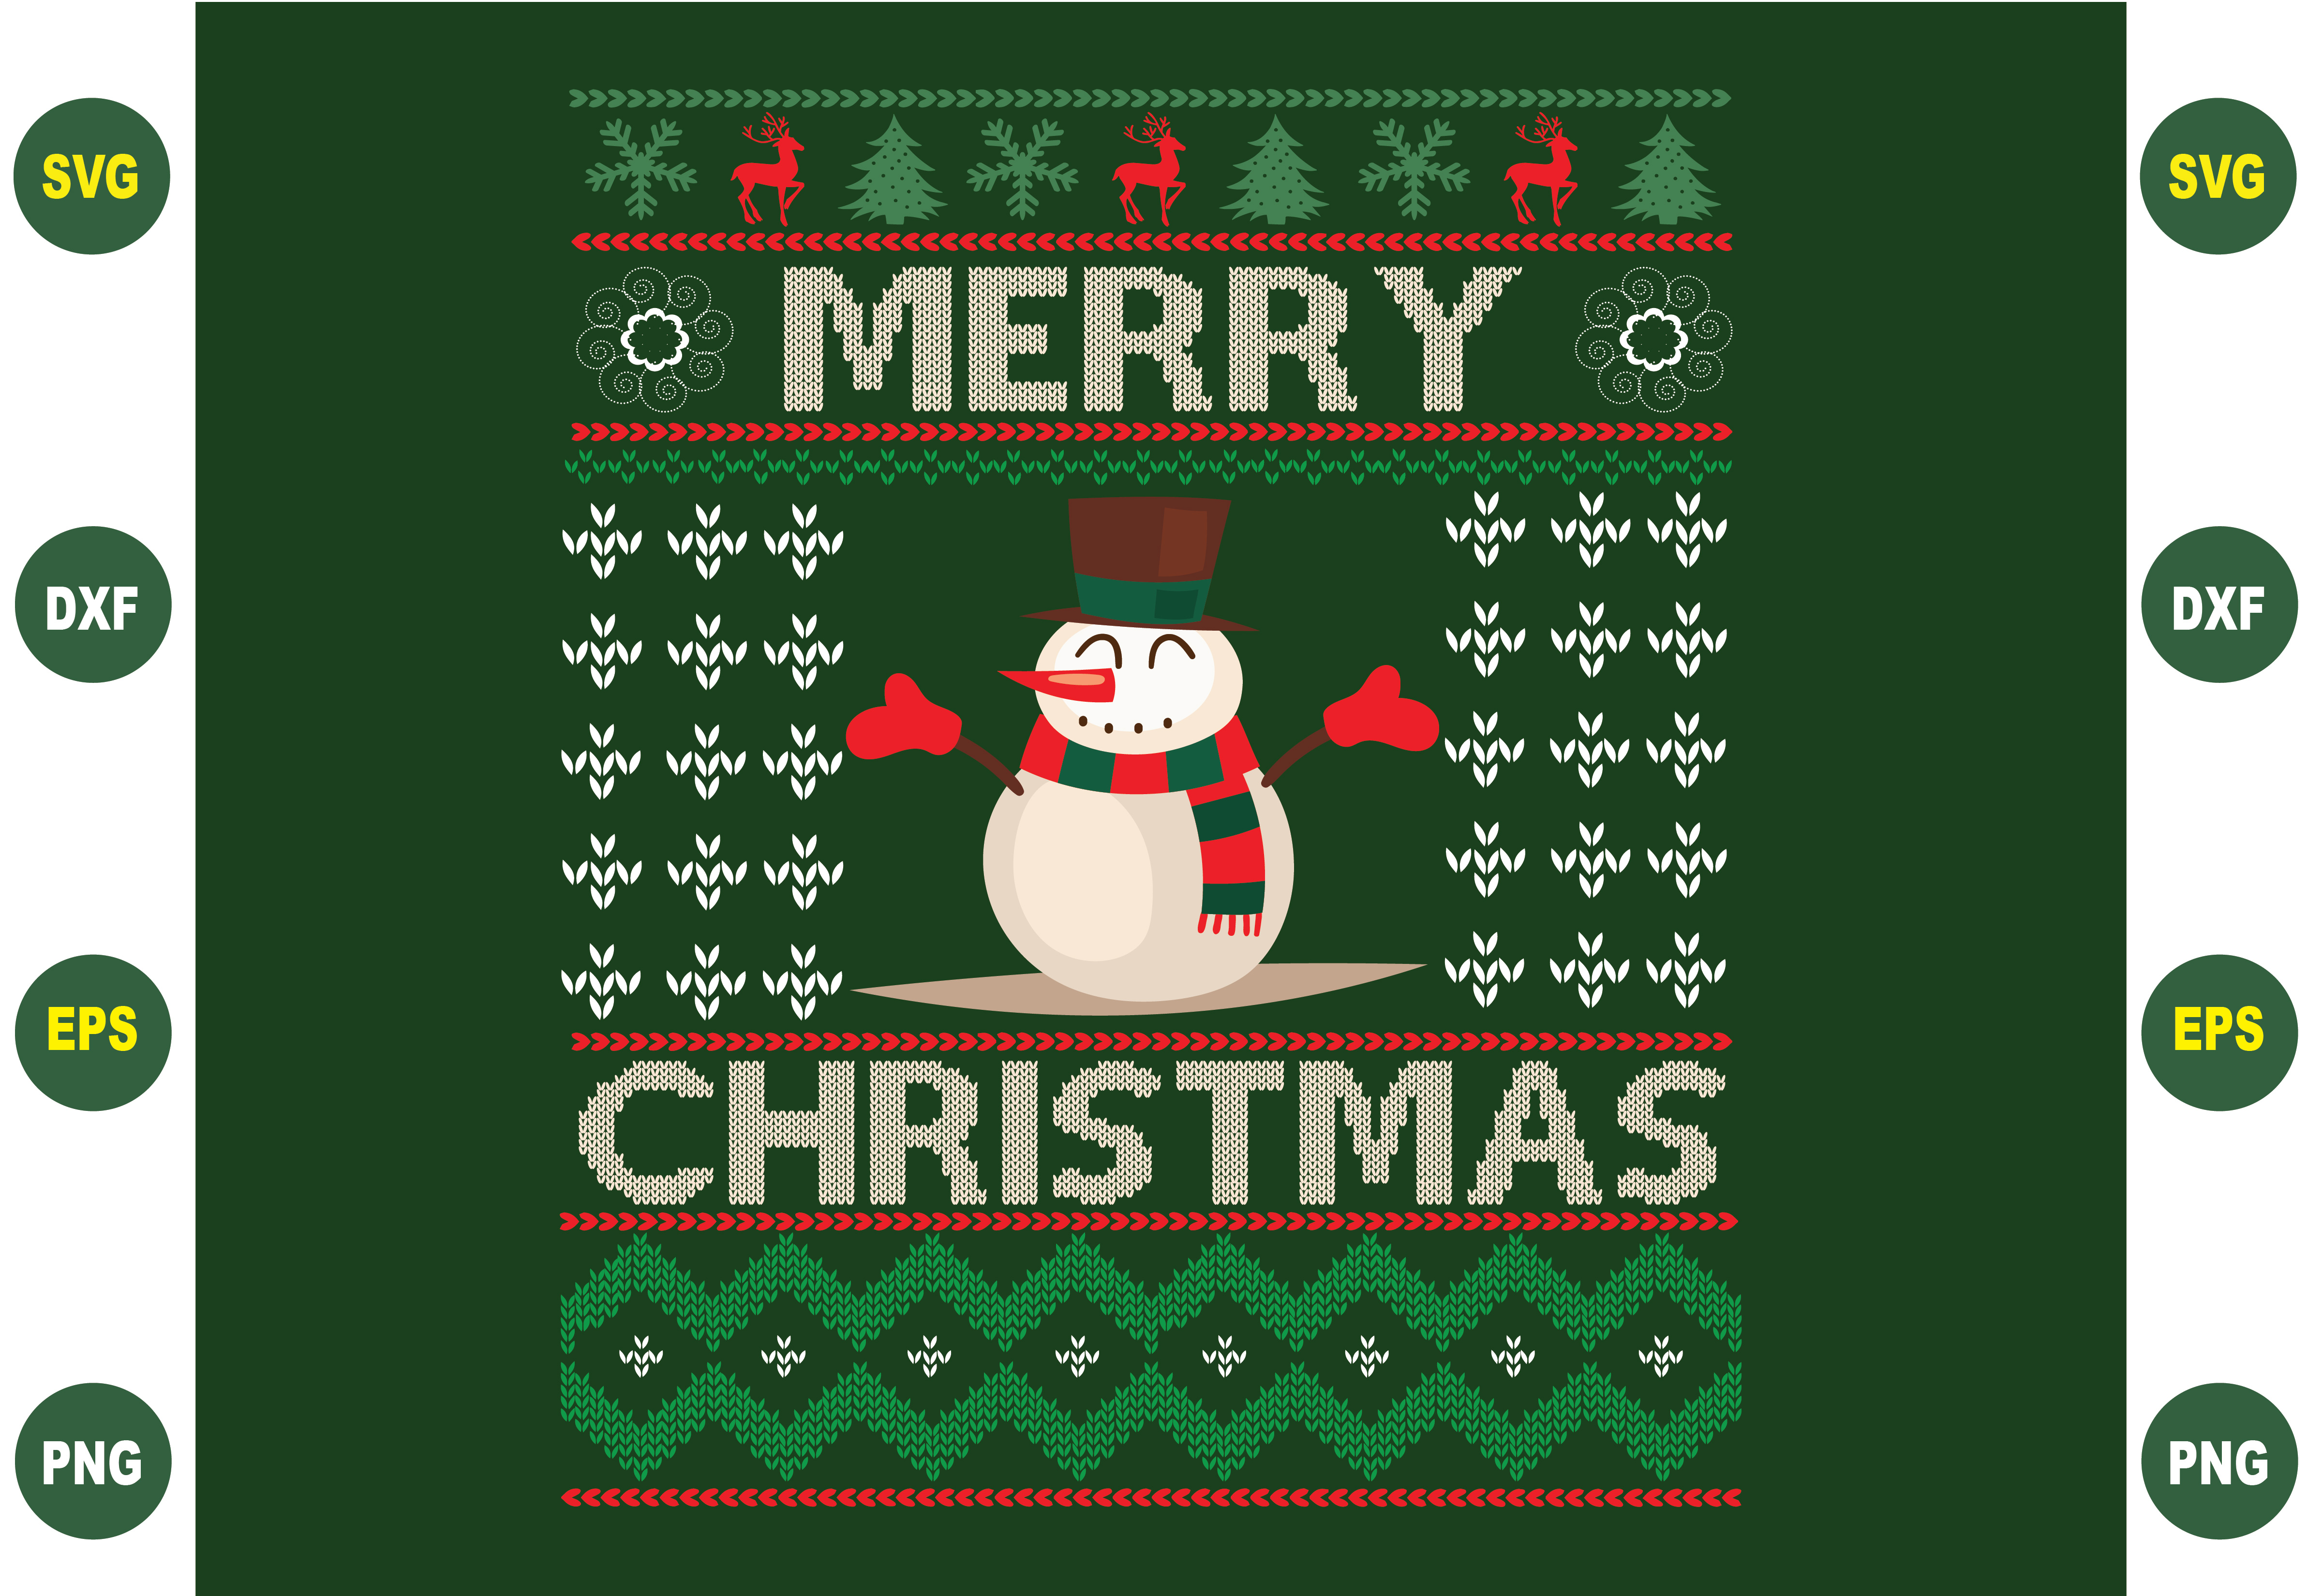 and snowman designs in JPEG and PNG file formats Digital Download Clipart \u2013 Variety of 11 Christmas ornaments gifts